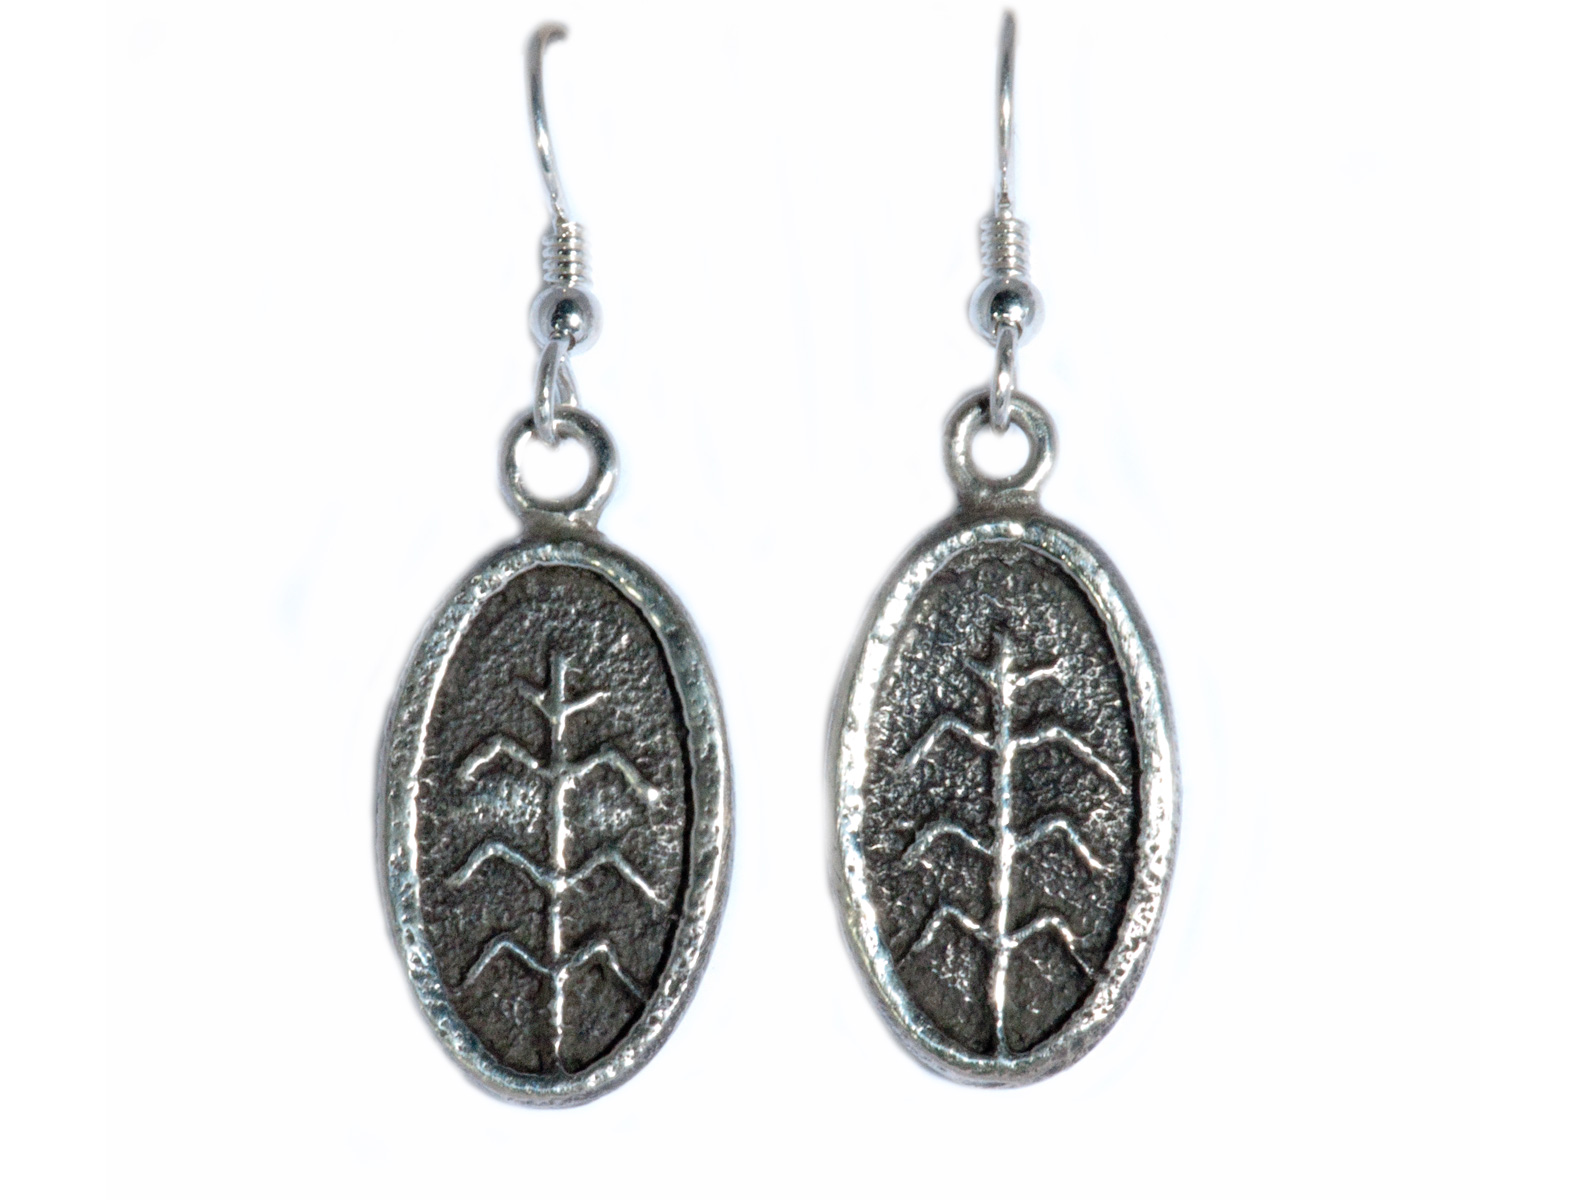 Tufa Cast Maize Earrings